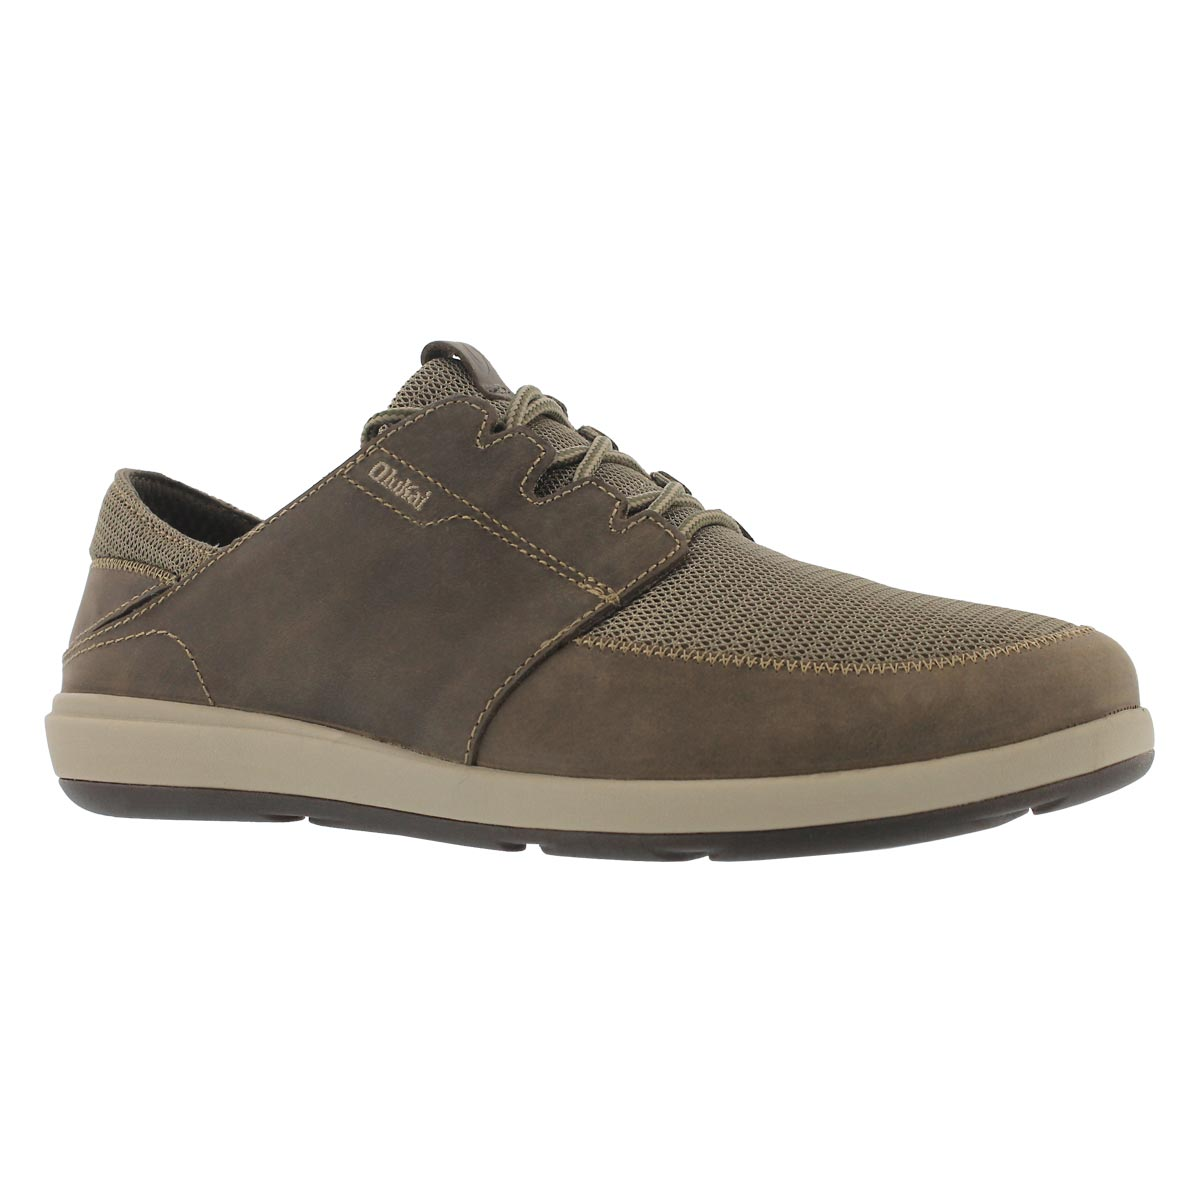 Men's MAKIA lace clay casual shoes